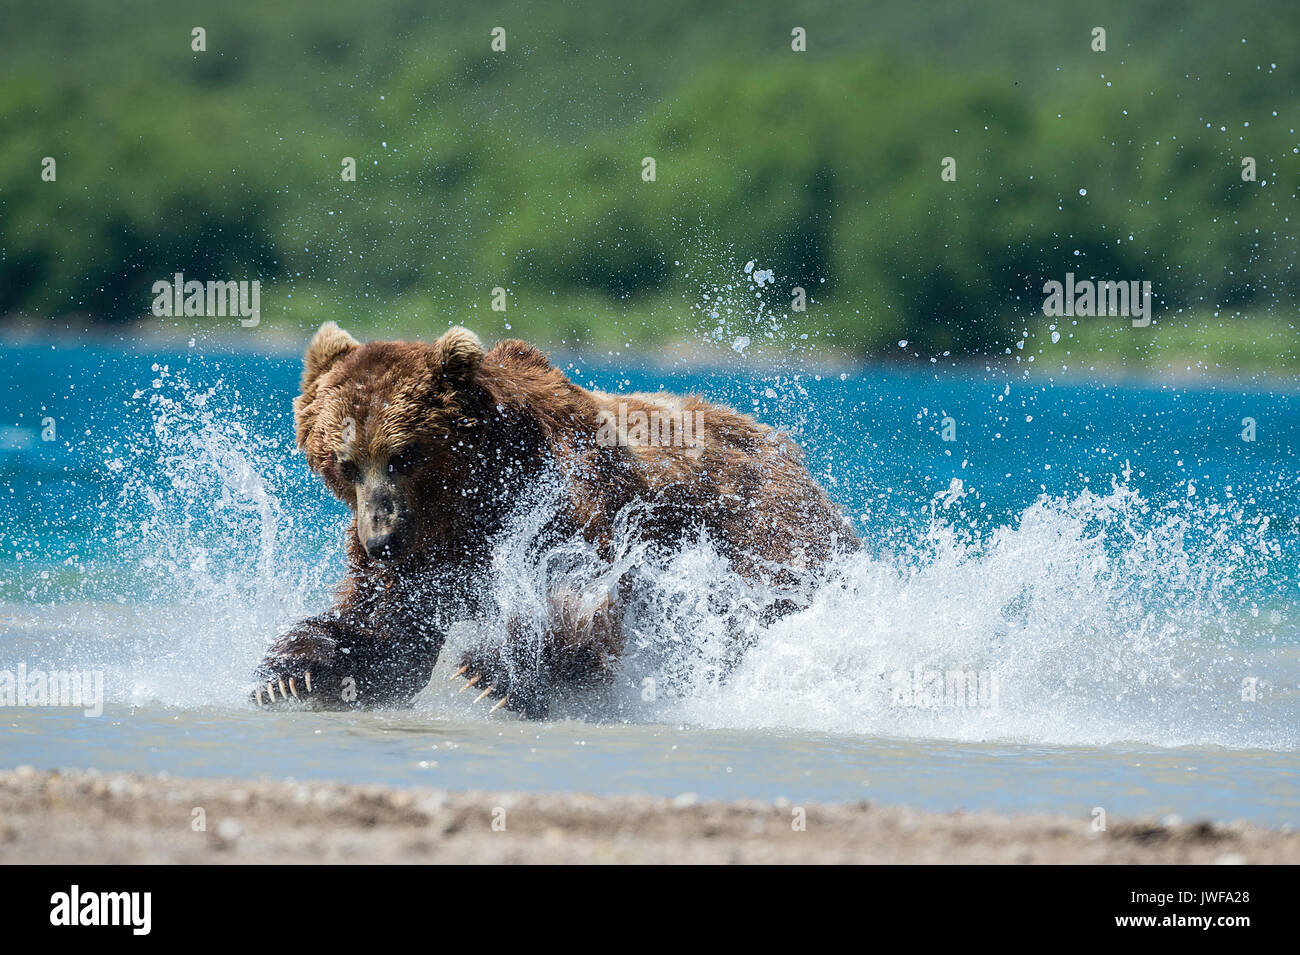 Brown bear pouncing on sockeye salmon in the rivers around Kuril Lake Kamchatka, Russia. Stock Photo